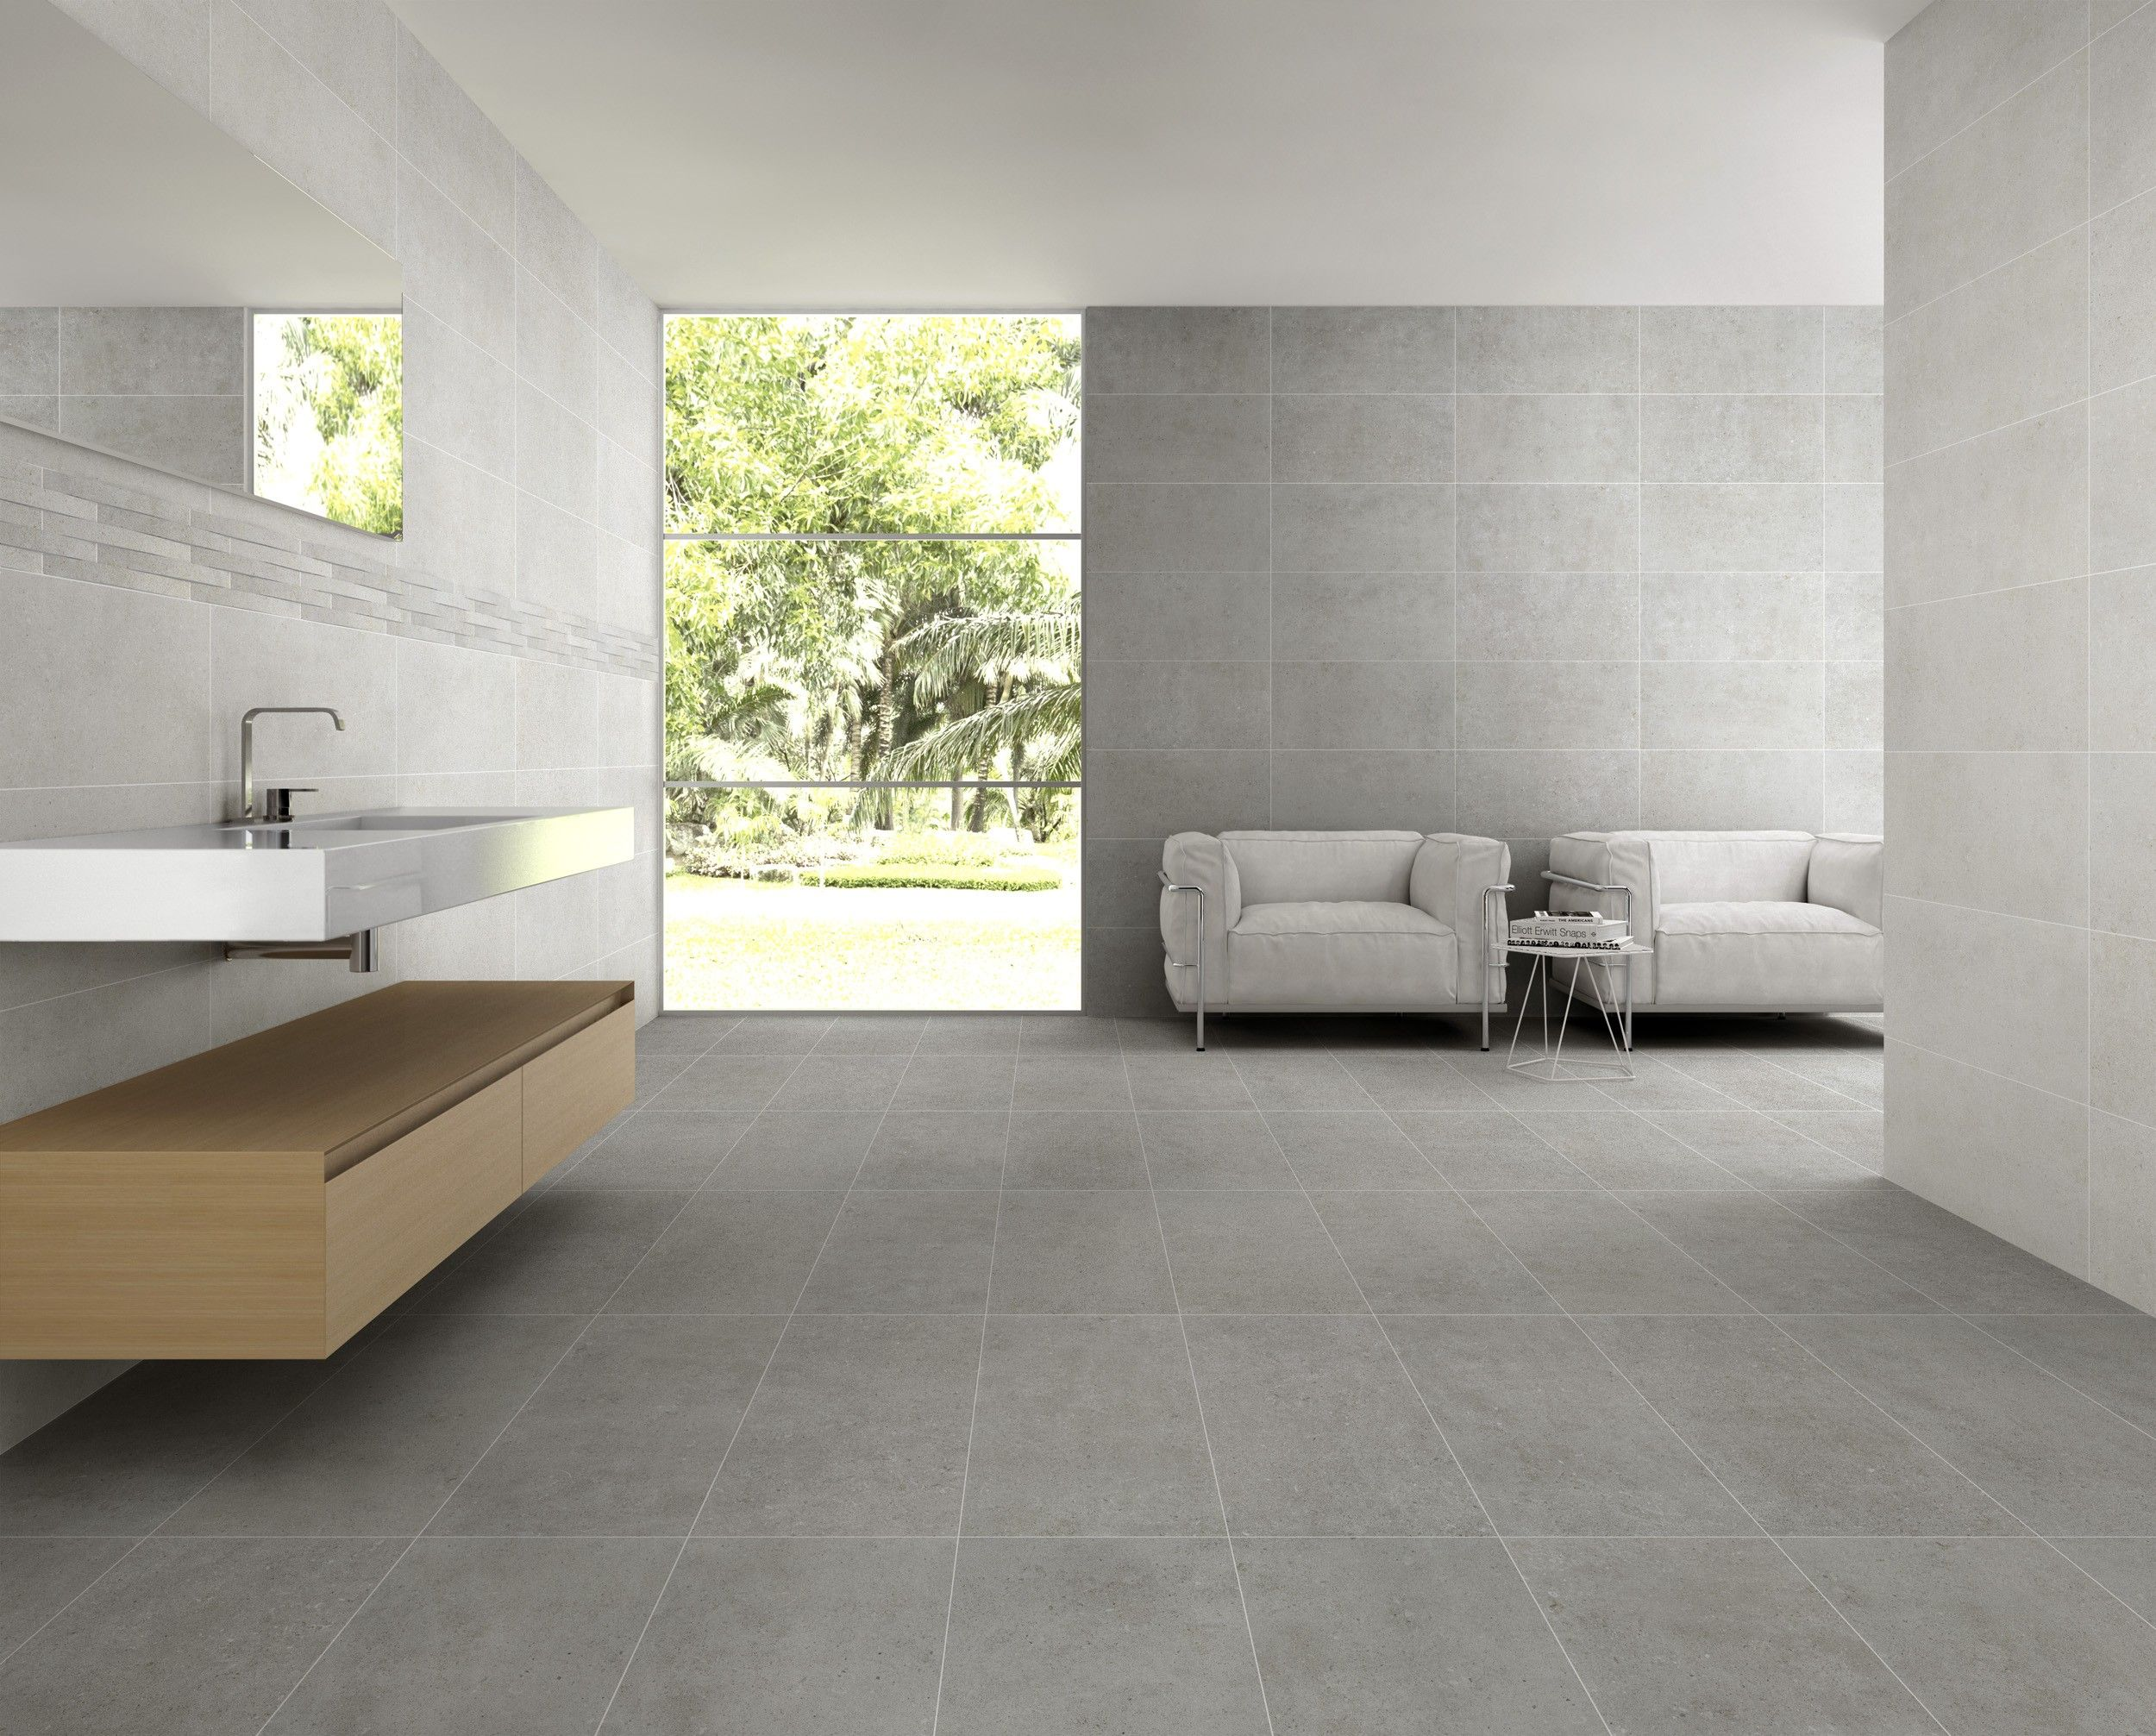 Sintesi Ceramica Italiana Explorer Booth 5211 Explorer Is Available In Two Surfaces Making It Adaptable To Interior Relooking Salle De Bain Tuile Mur Gris